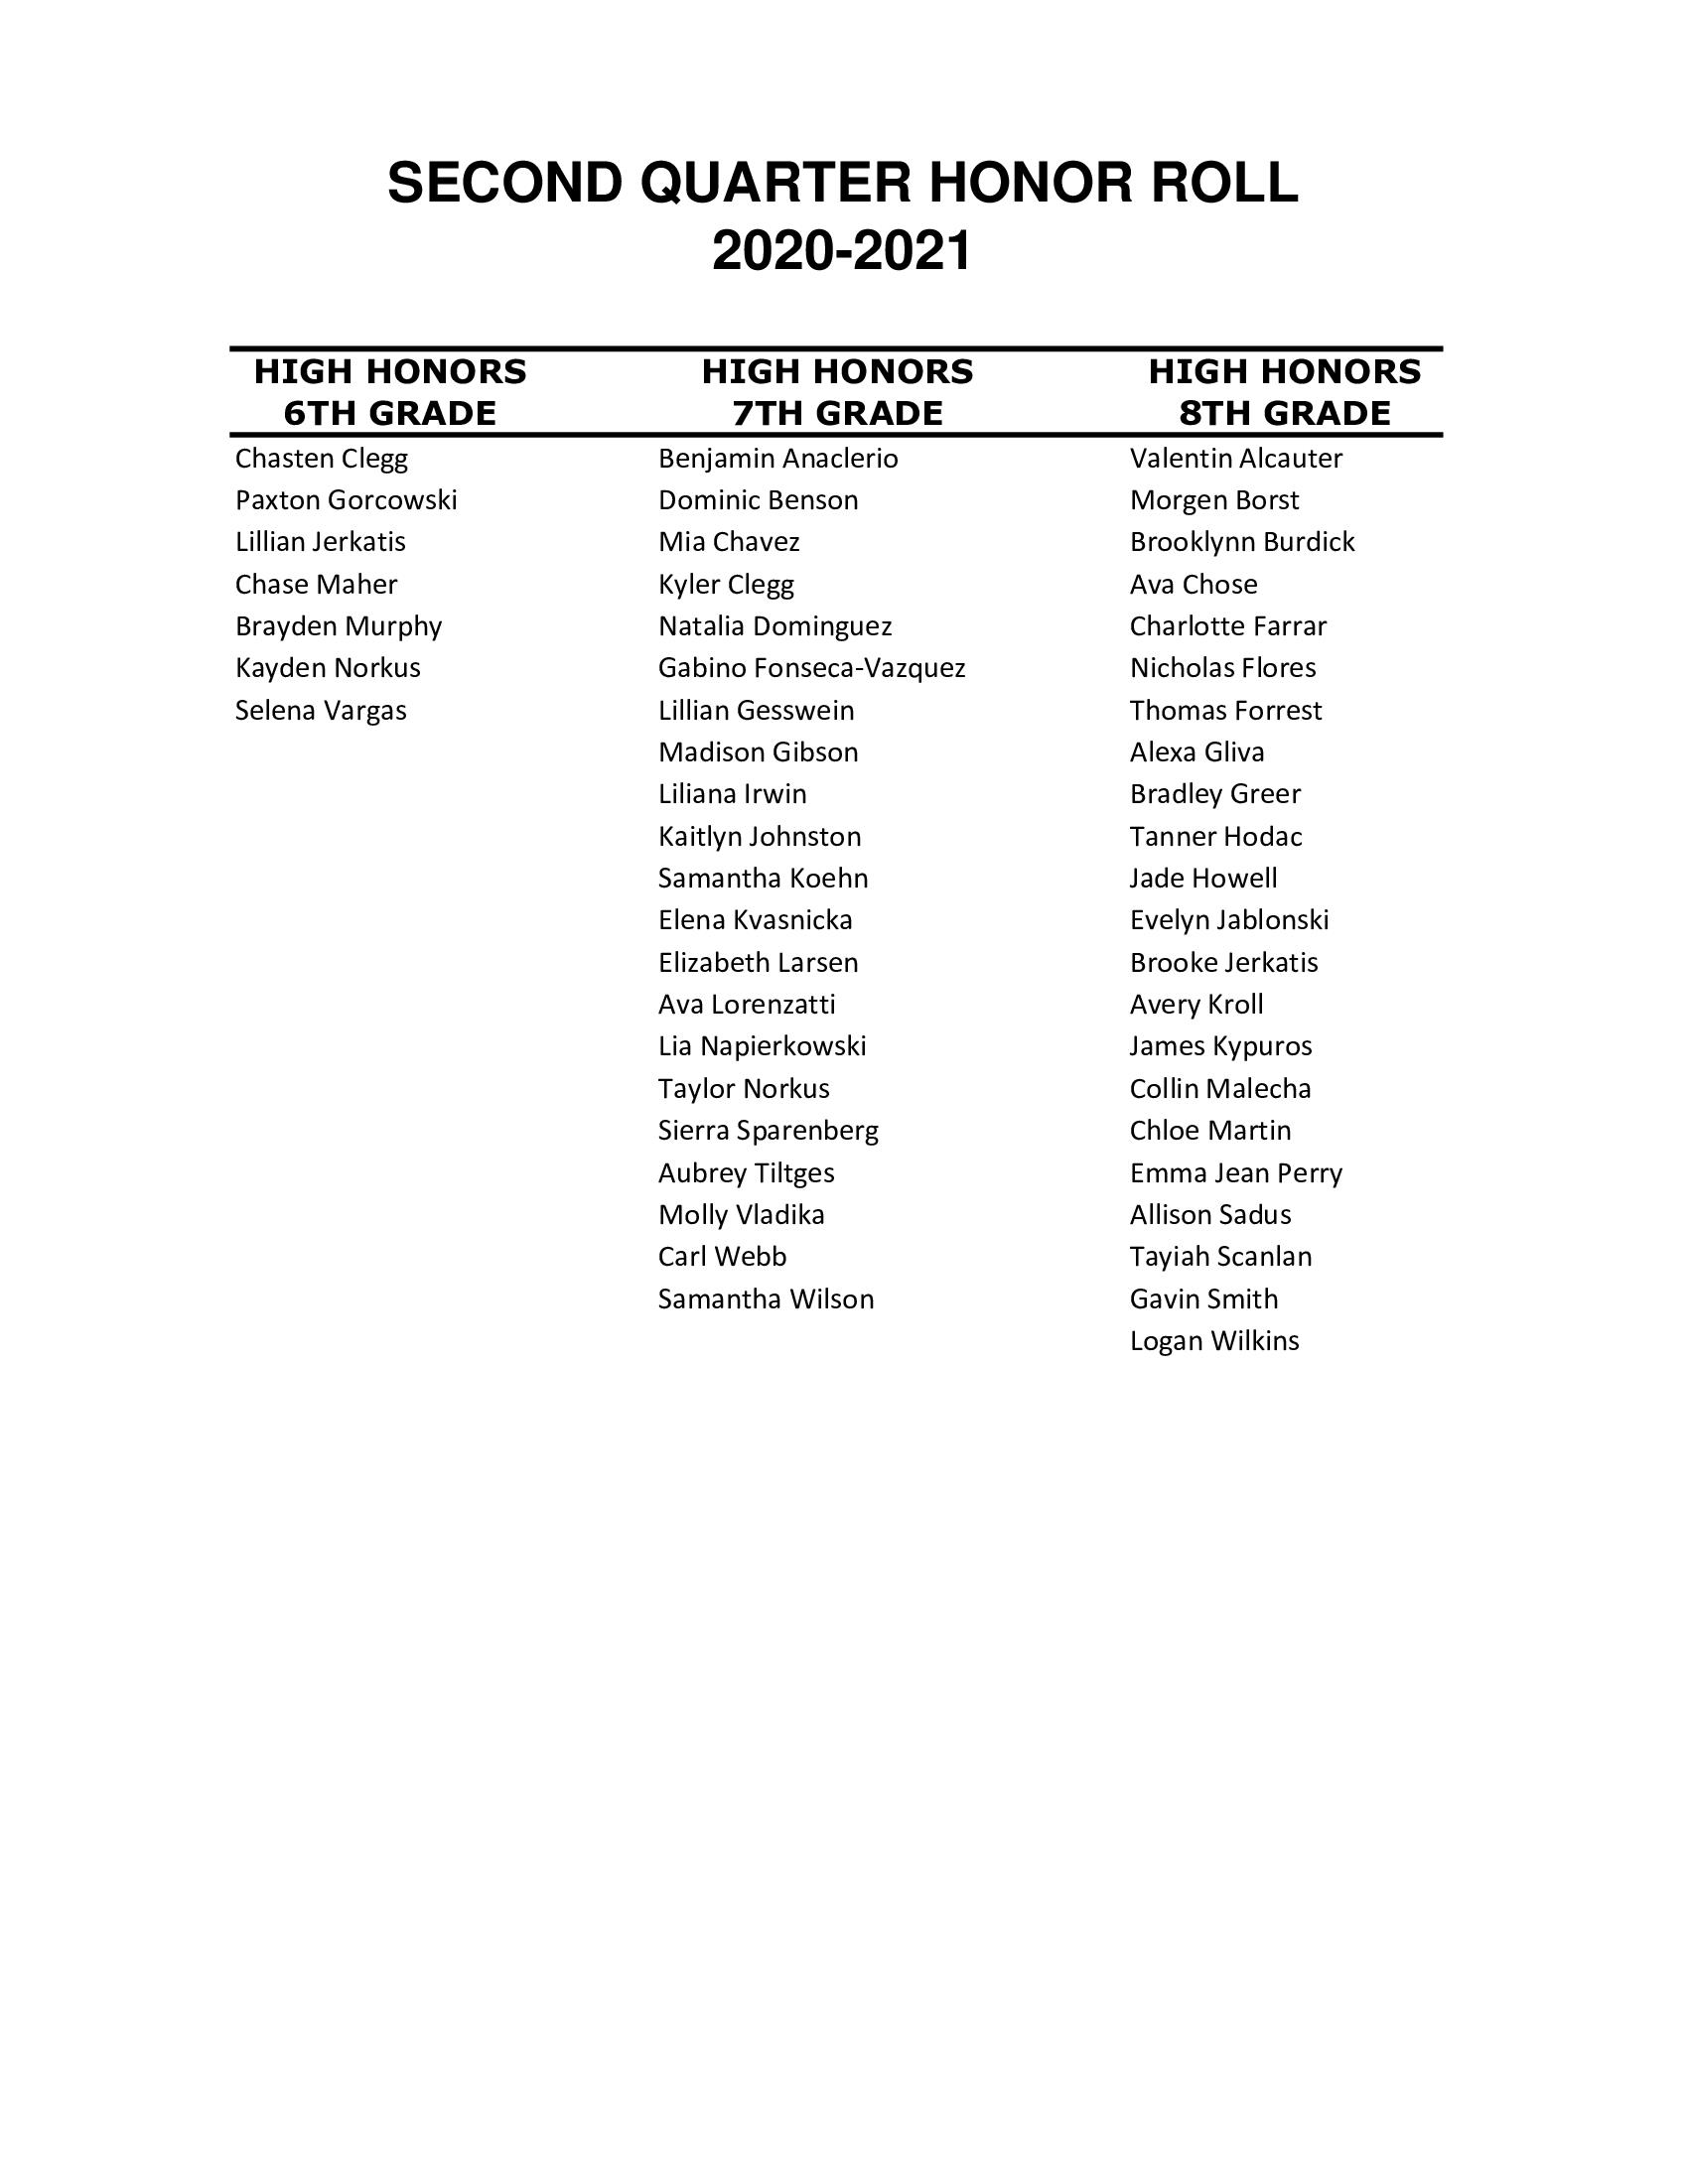 BJHS High Honor Roll